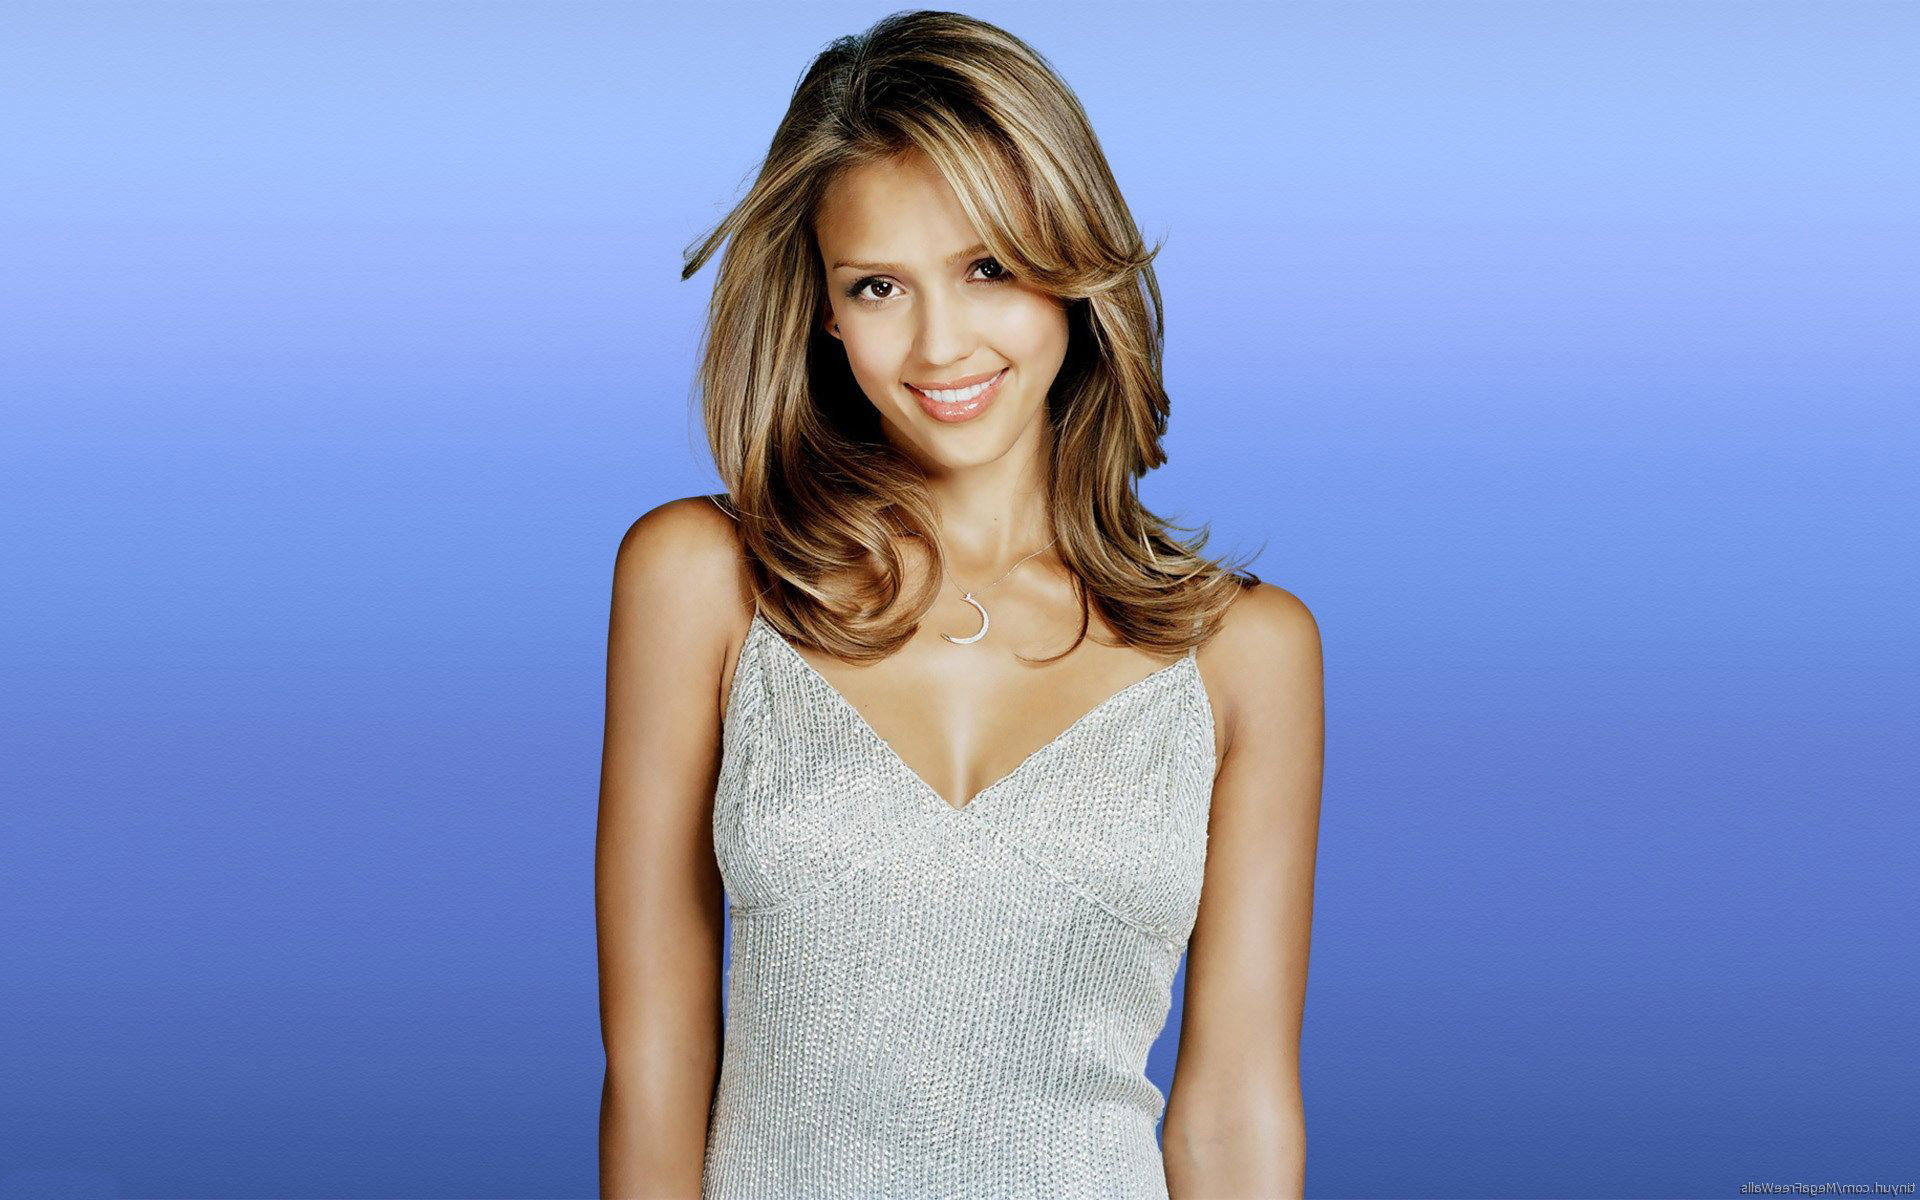 jessica alba wallpaper pc - photo #17